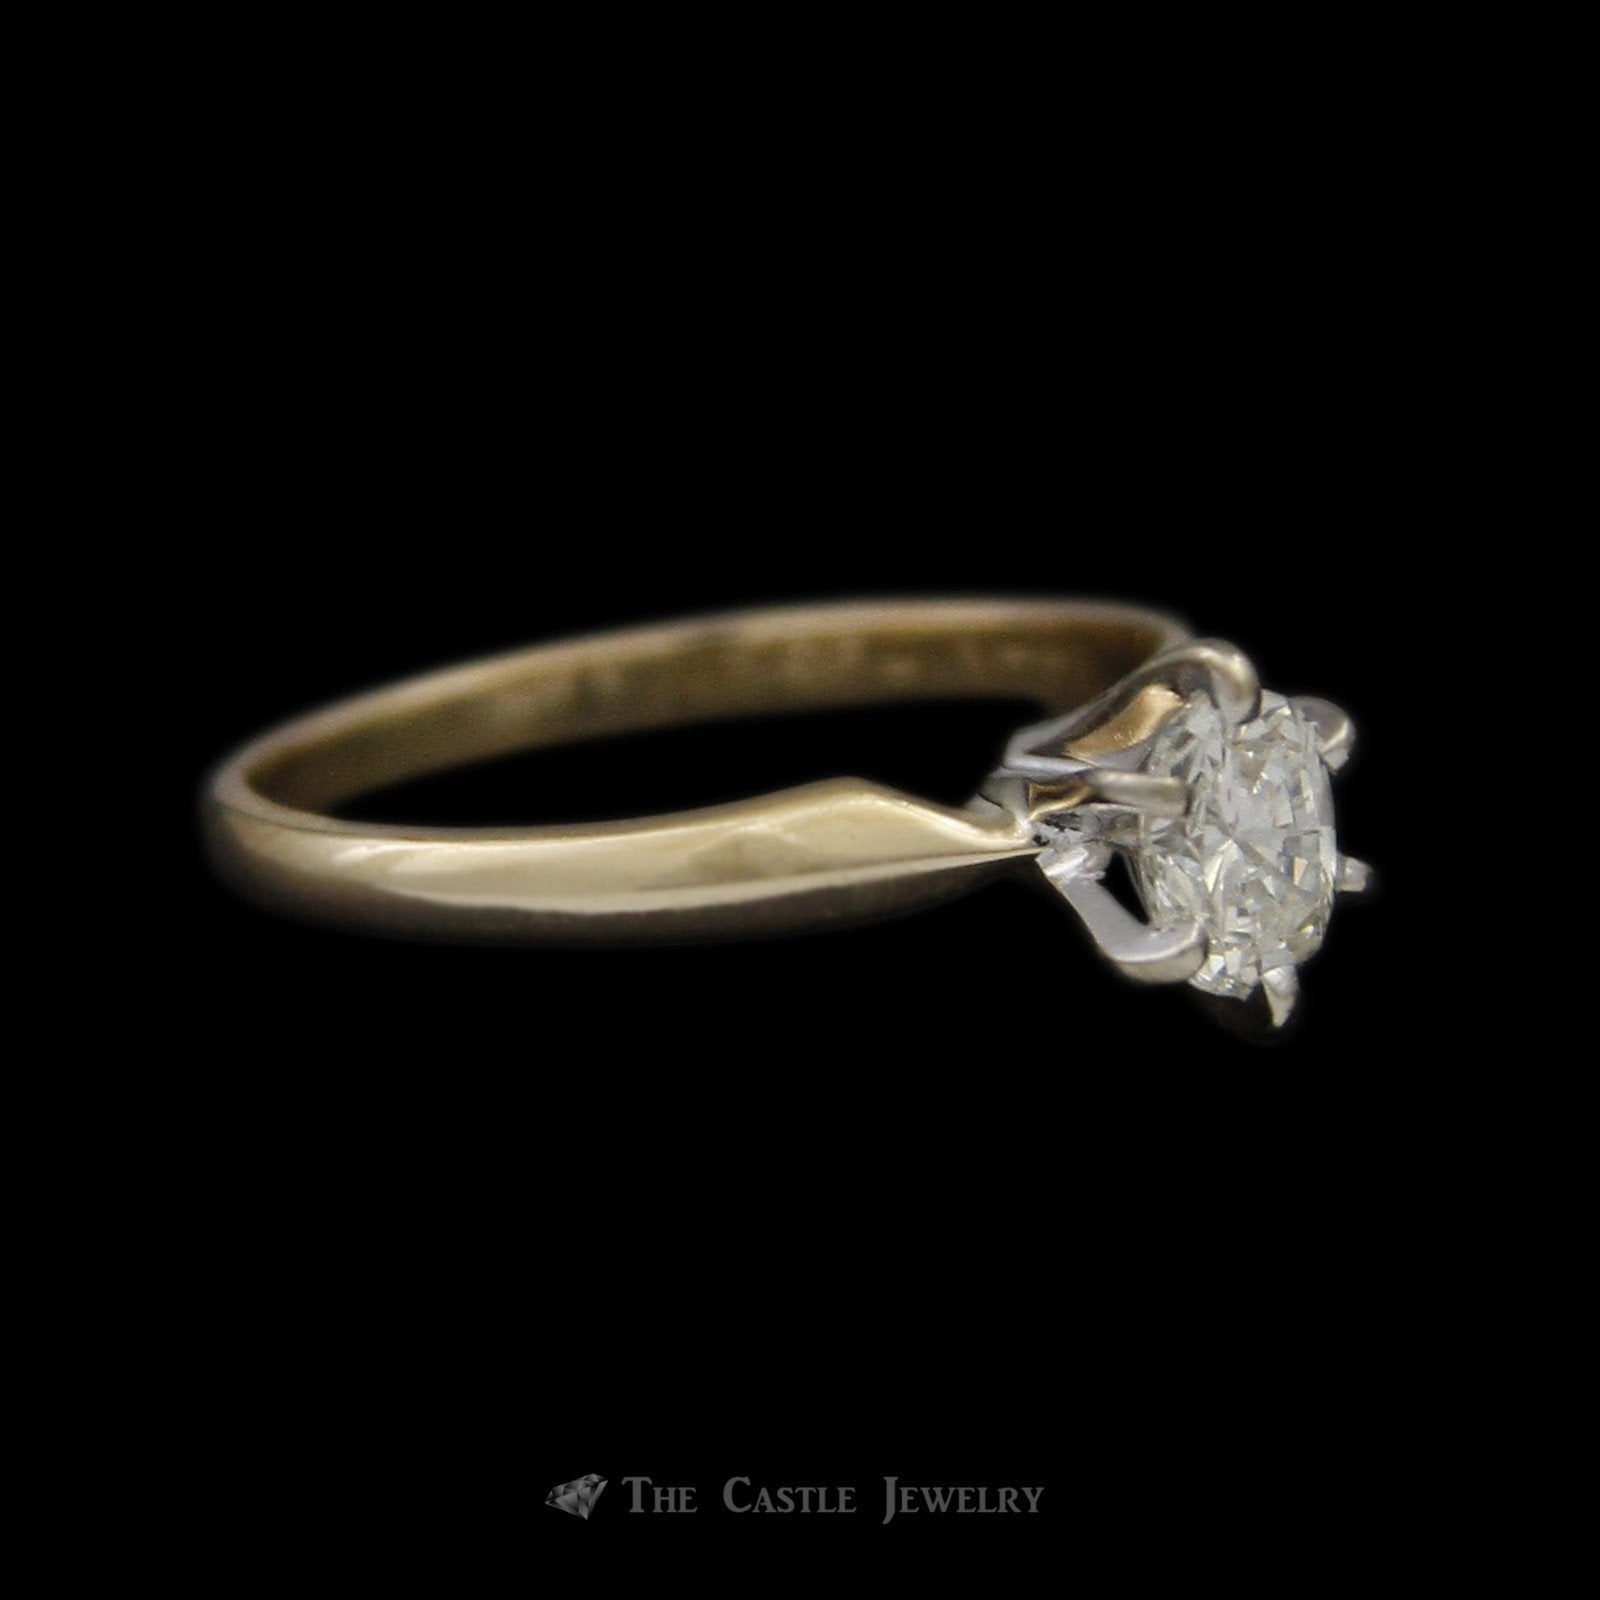 Oval .45ct VS2/G Diamond Solitaire Engagement Ring Crafted in 14k Gold-2